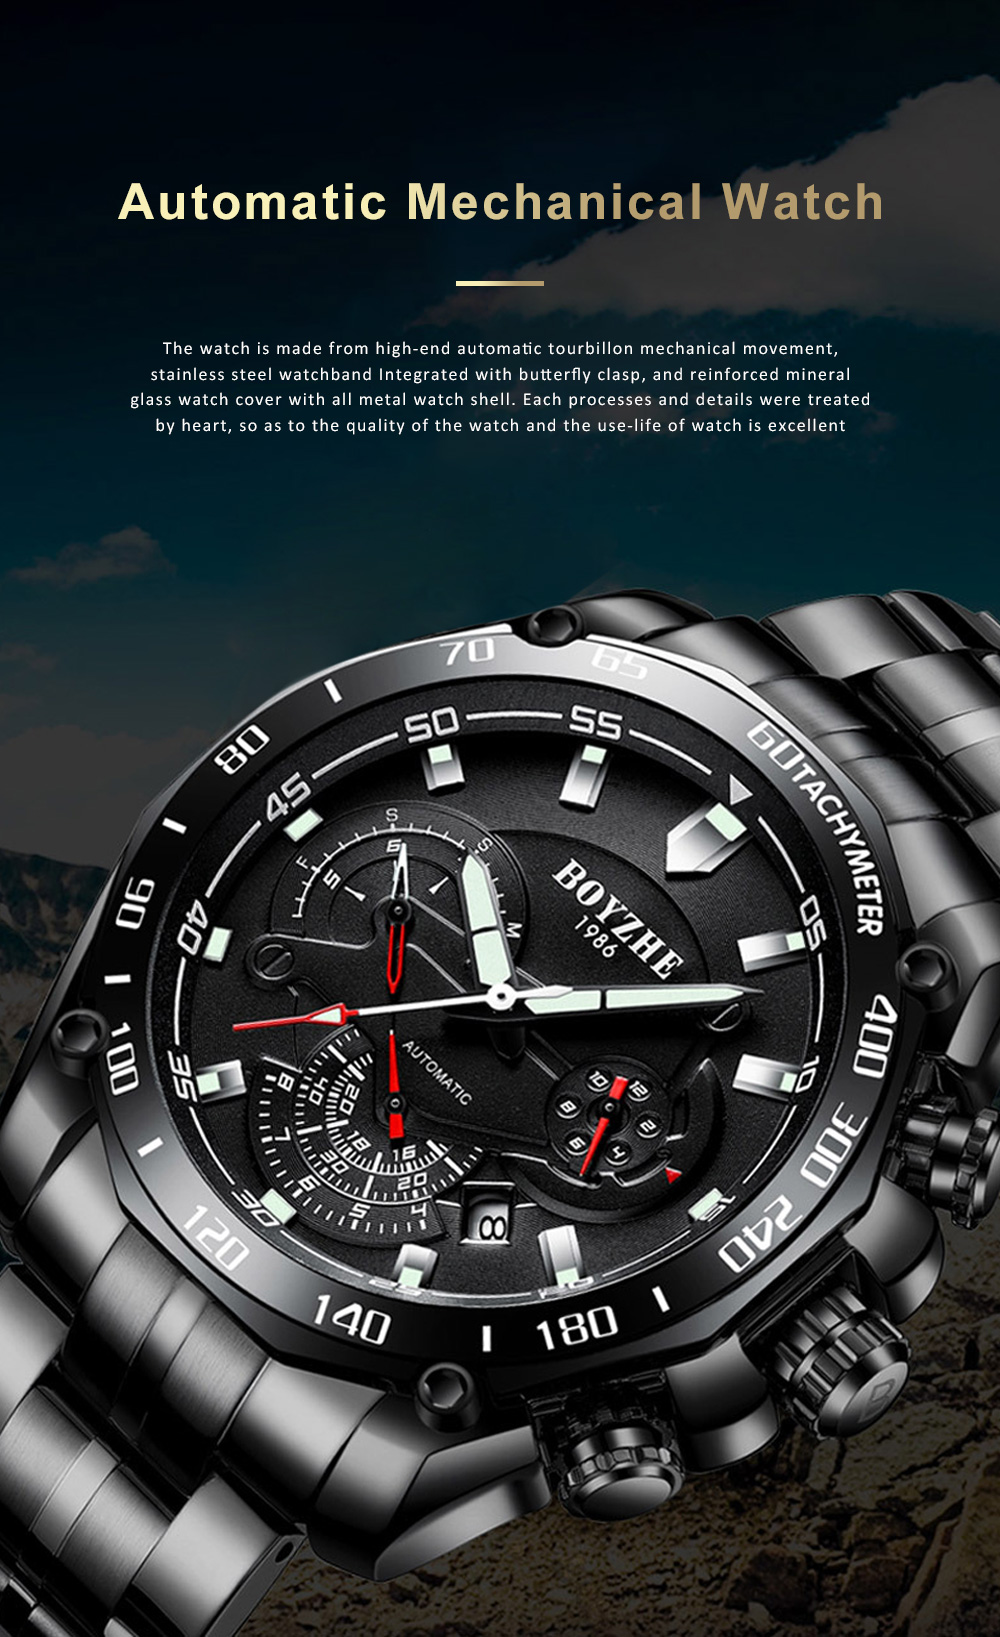 Automatic Mechanical Watch for Businessman, Stainless Steel Watchband Fashion Watch, Waterproof Sports Wrist Watch 0